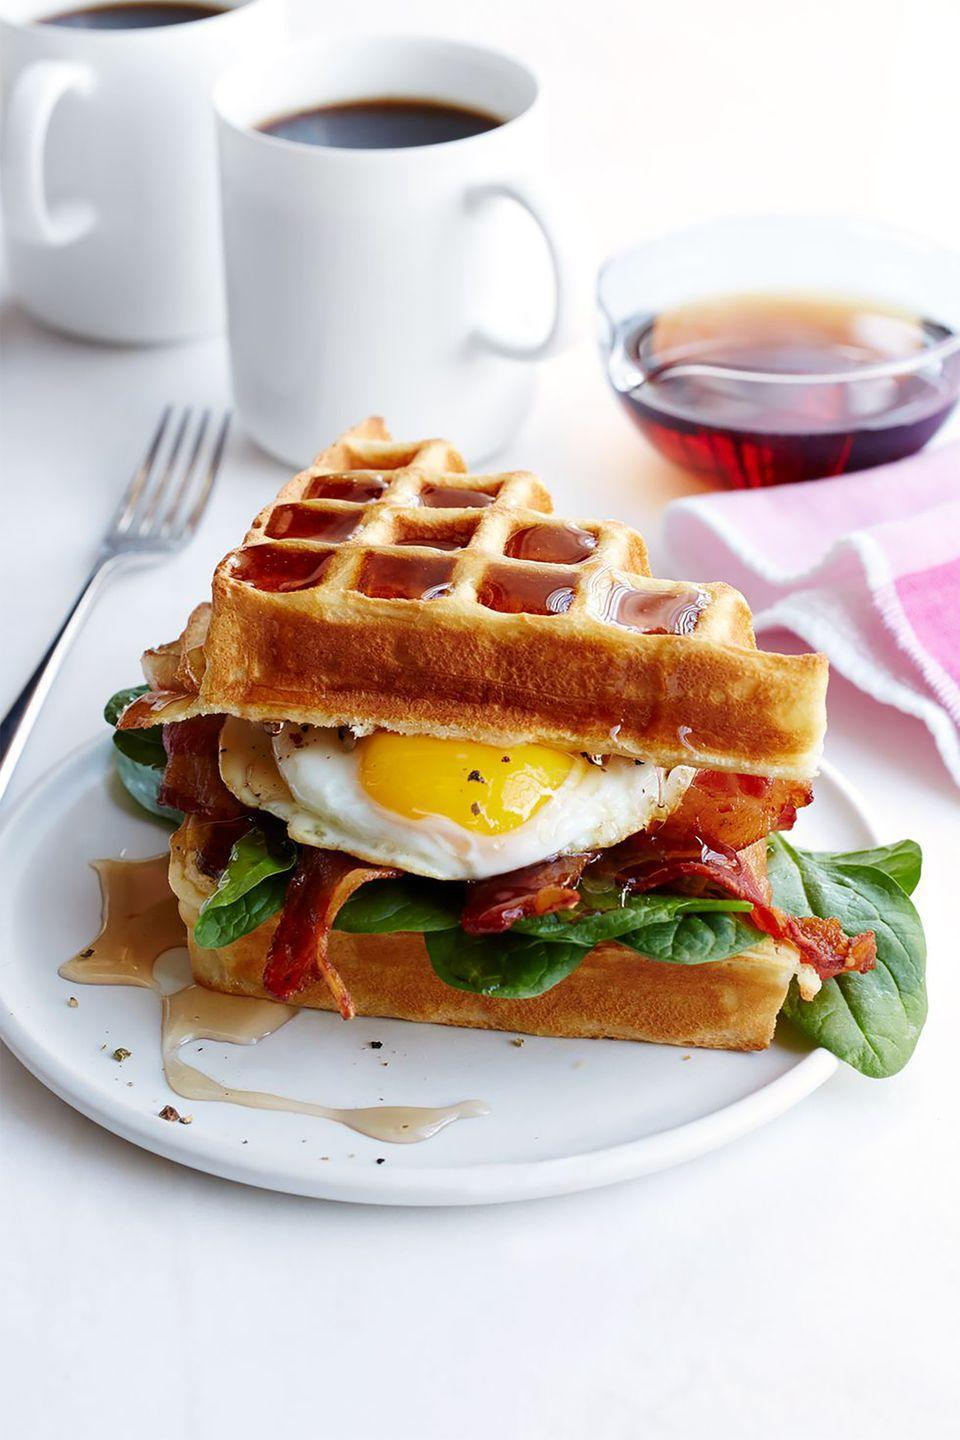 """<p>There's possibly nothing quite better (or tastier) than a breakfast sandwich made with waffles, eggs, <em>and</em> bacon. </p><p><strong><a href=""""https://www.womansday.com/food-recipes/recipes/a50558/buttermilk-waffle-bacon-egg-sandwich-recipe-wdy0615/"""" rel=""""nofollow noopener"""" target=""""_blank"""" data-ylk=""""slk:Get the Buttermilk Waffle, Bacon and Egg Sandwich recipe."""" class=""""link rapid-noclick-resp""""><em>Get the Buttermilk Waffle, Bacon and Egg Sandwich recipe.</em></a></strong> </p>"""